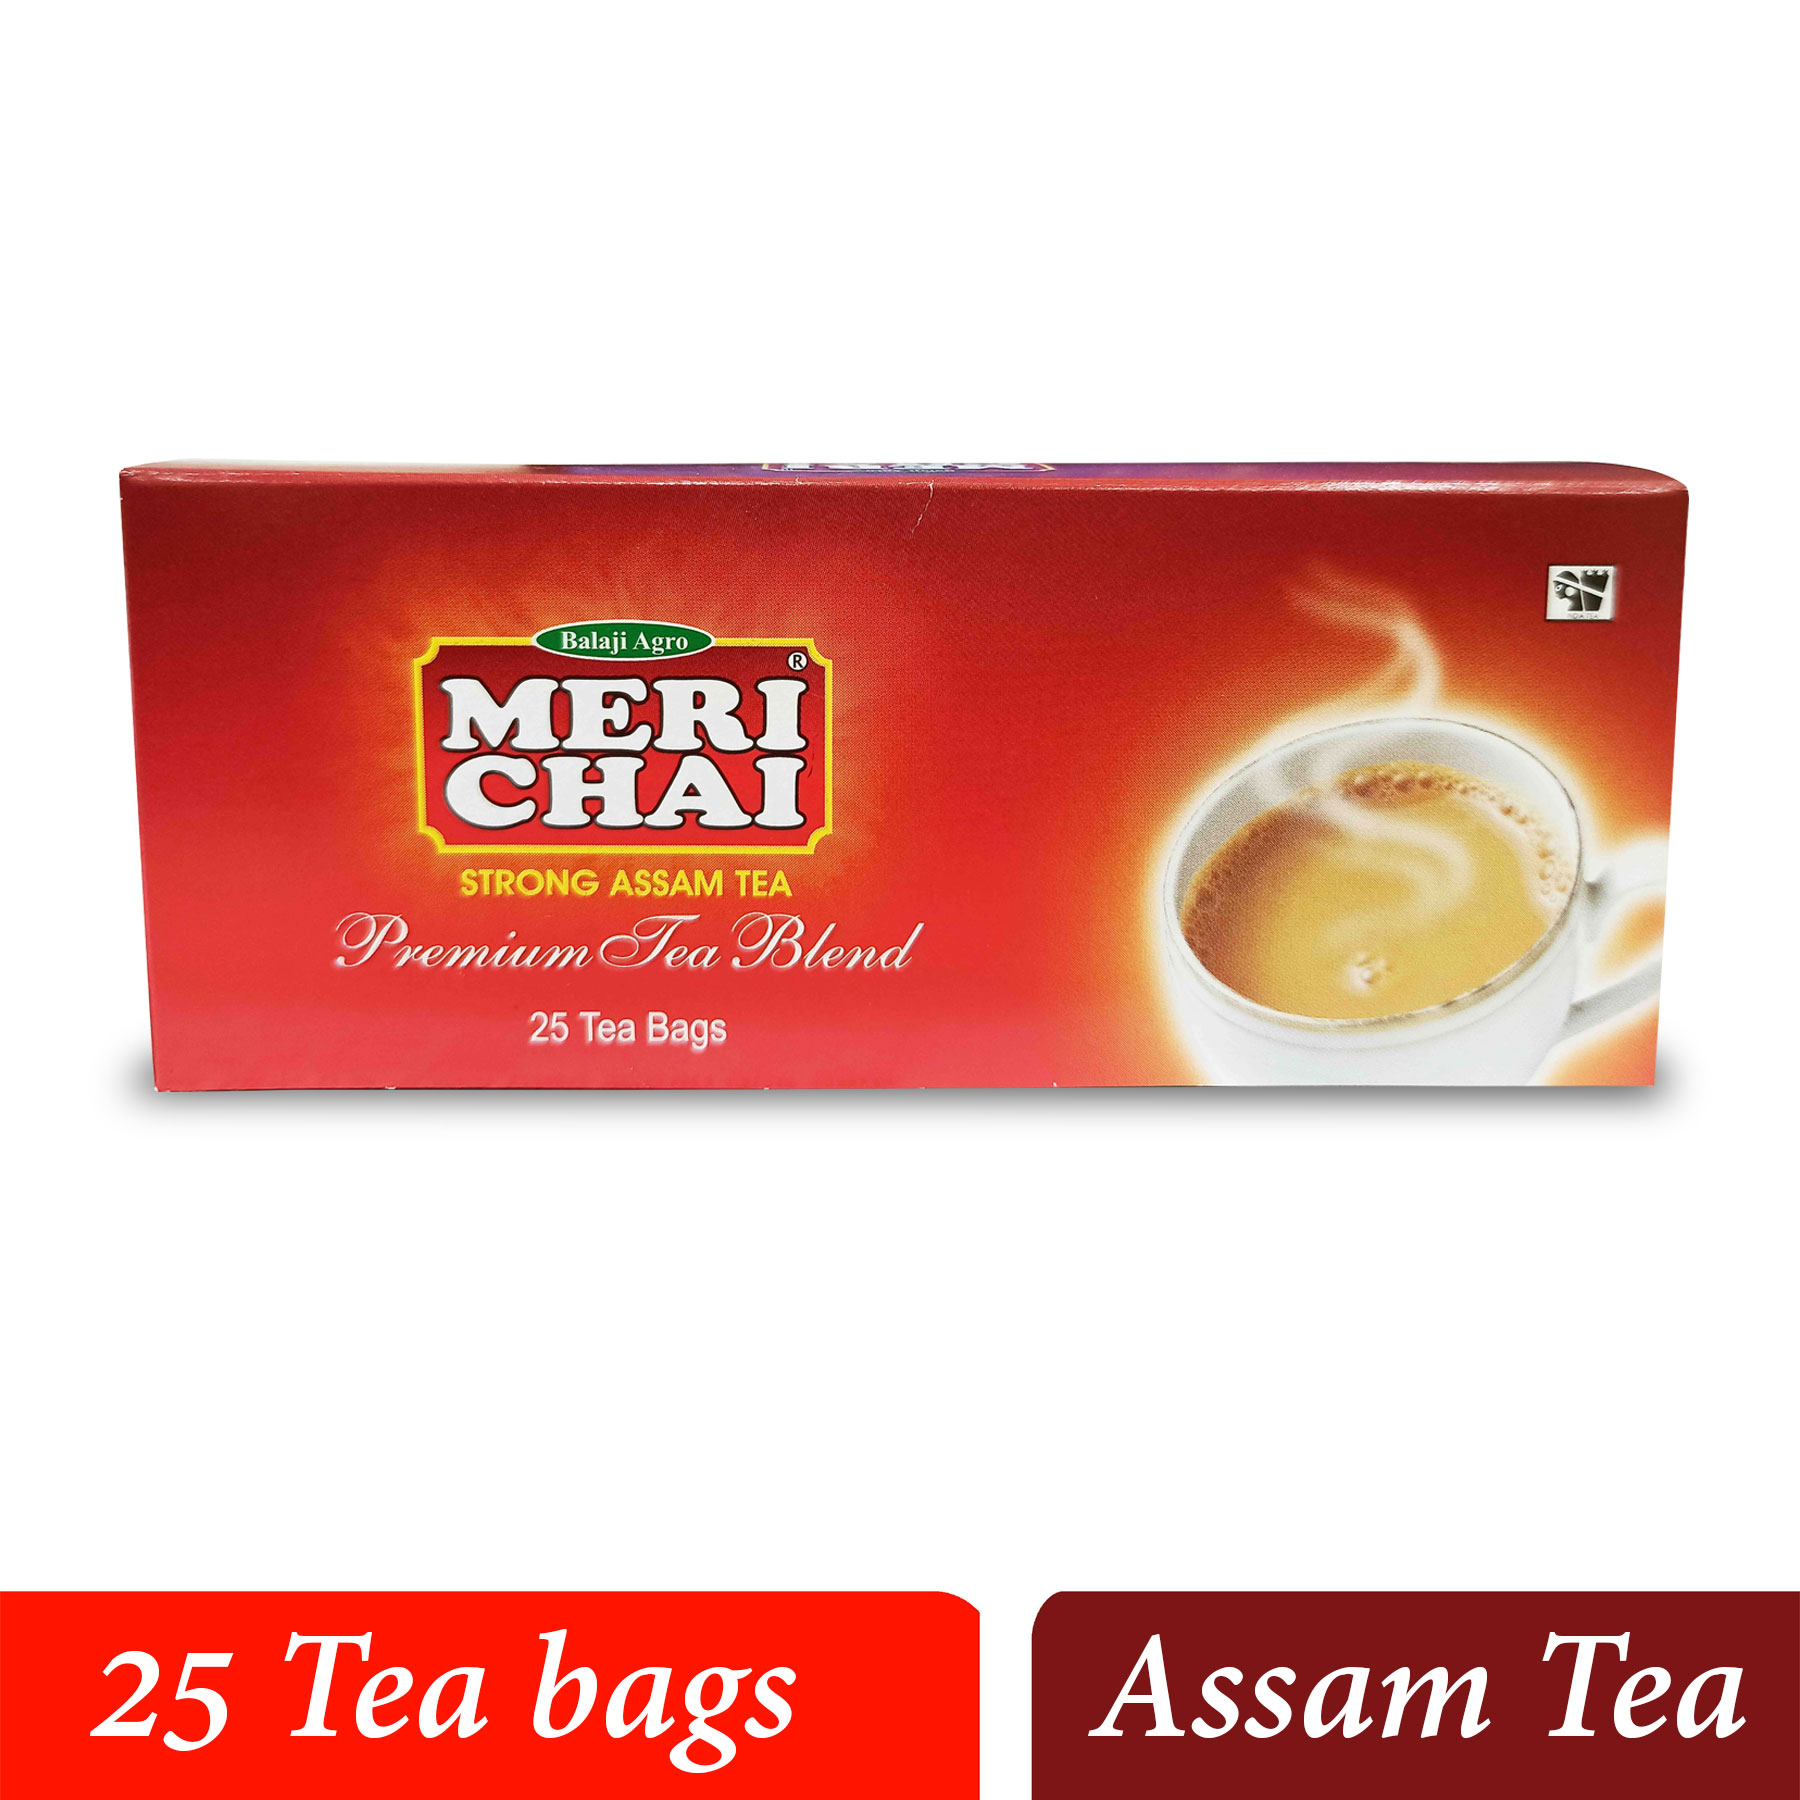 MERI CHAI Strong Assam Tea Premium Tea Blend 25 Tea Bags Box